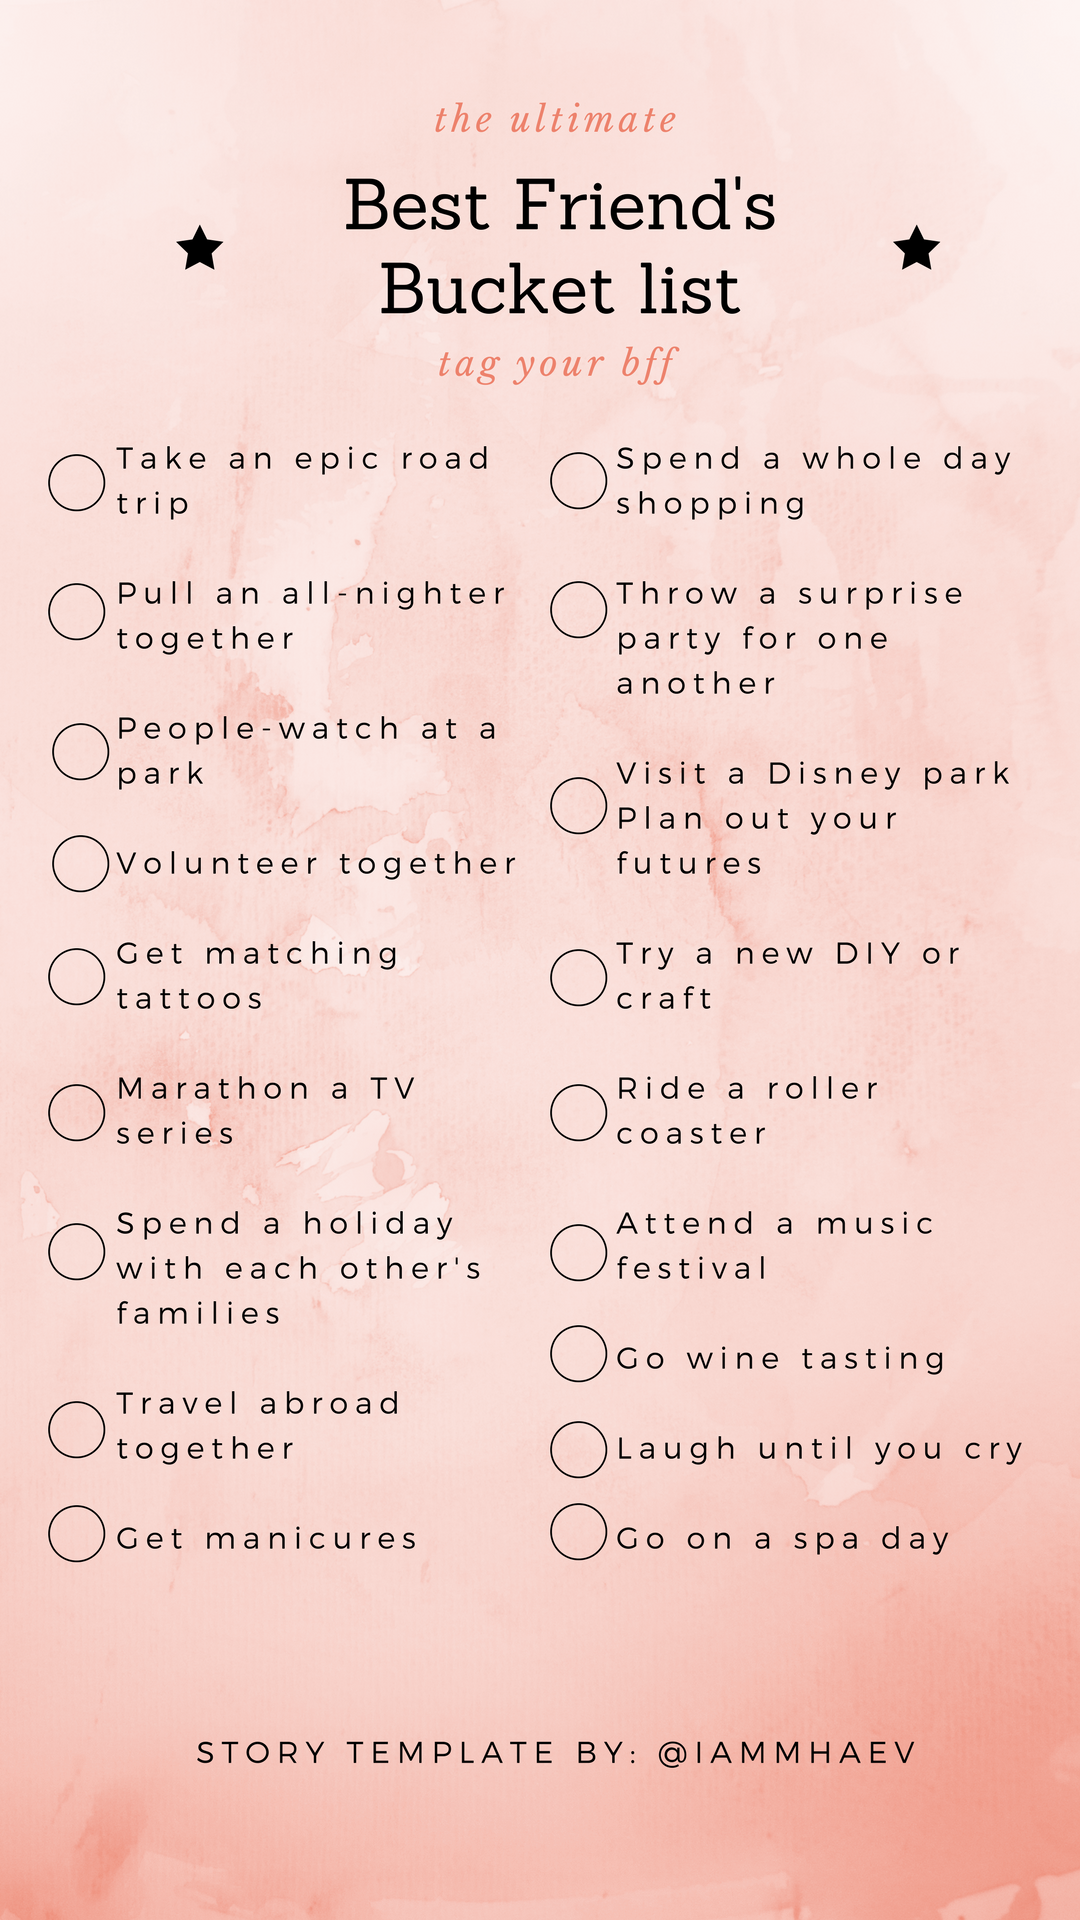 Best Friend's Bucket list Instagram Story Template #summerbucketlists